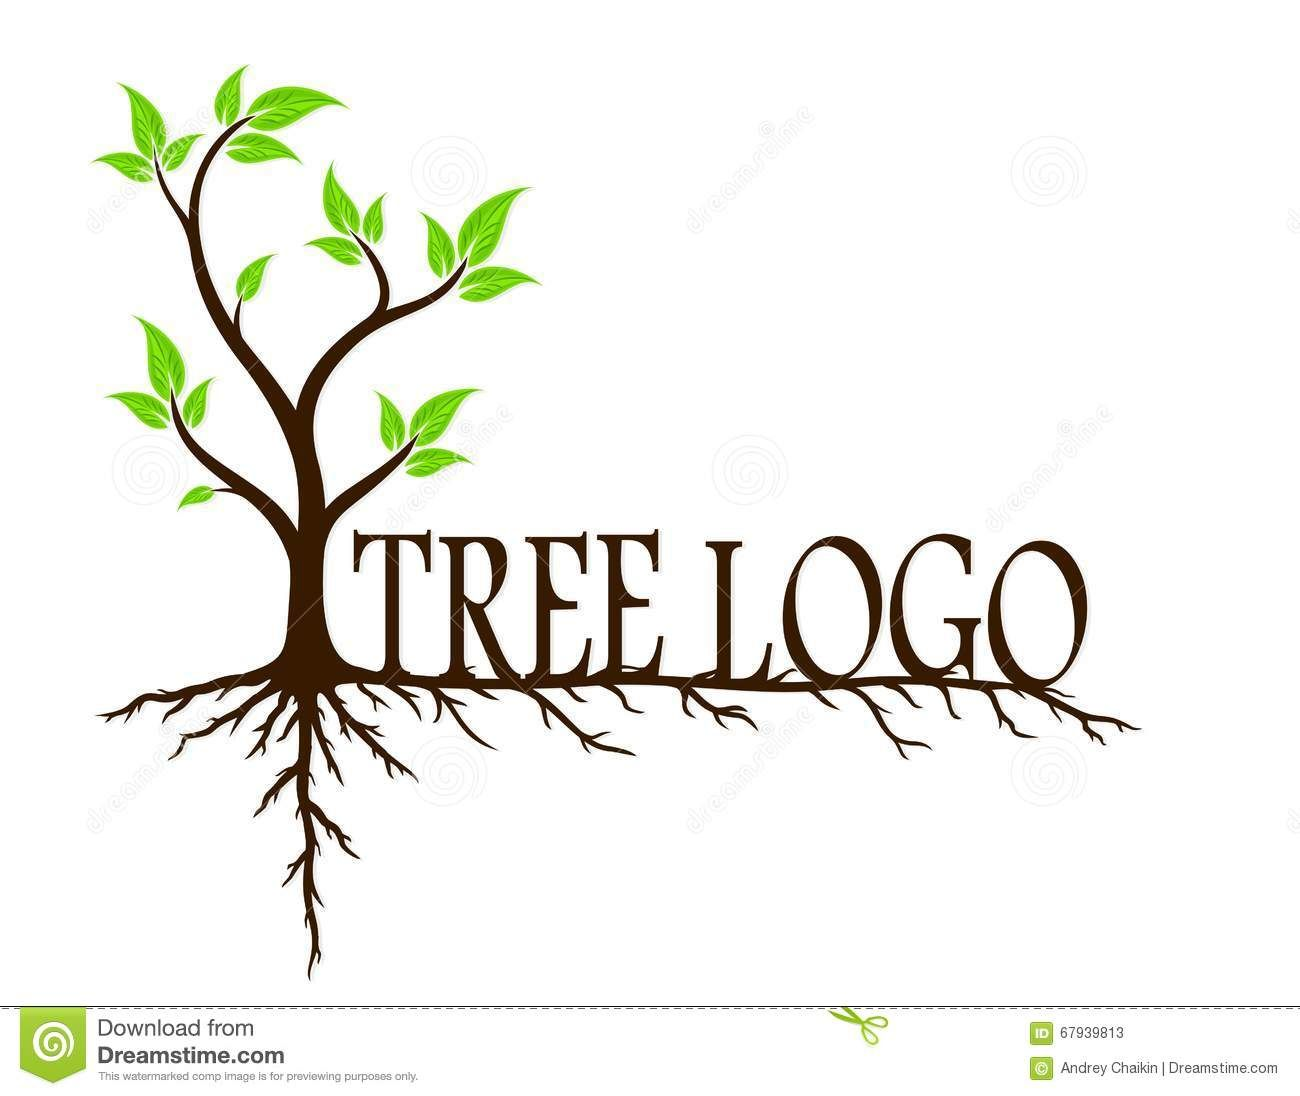 Roots stock clipart images gallery for free download.